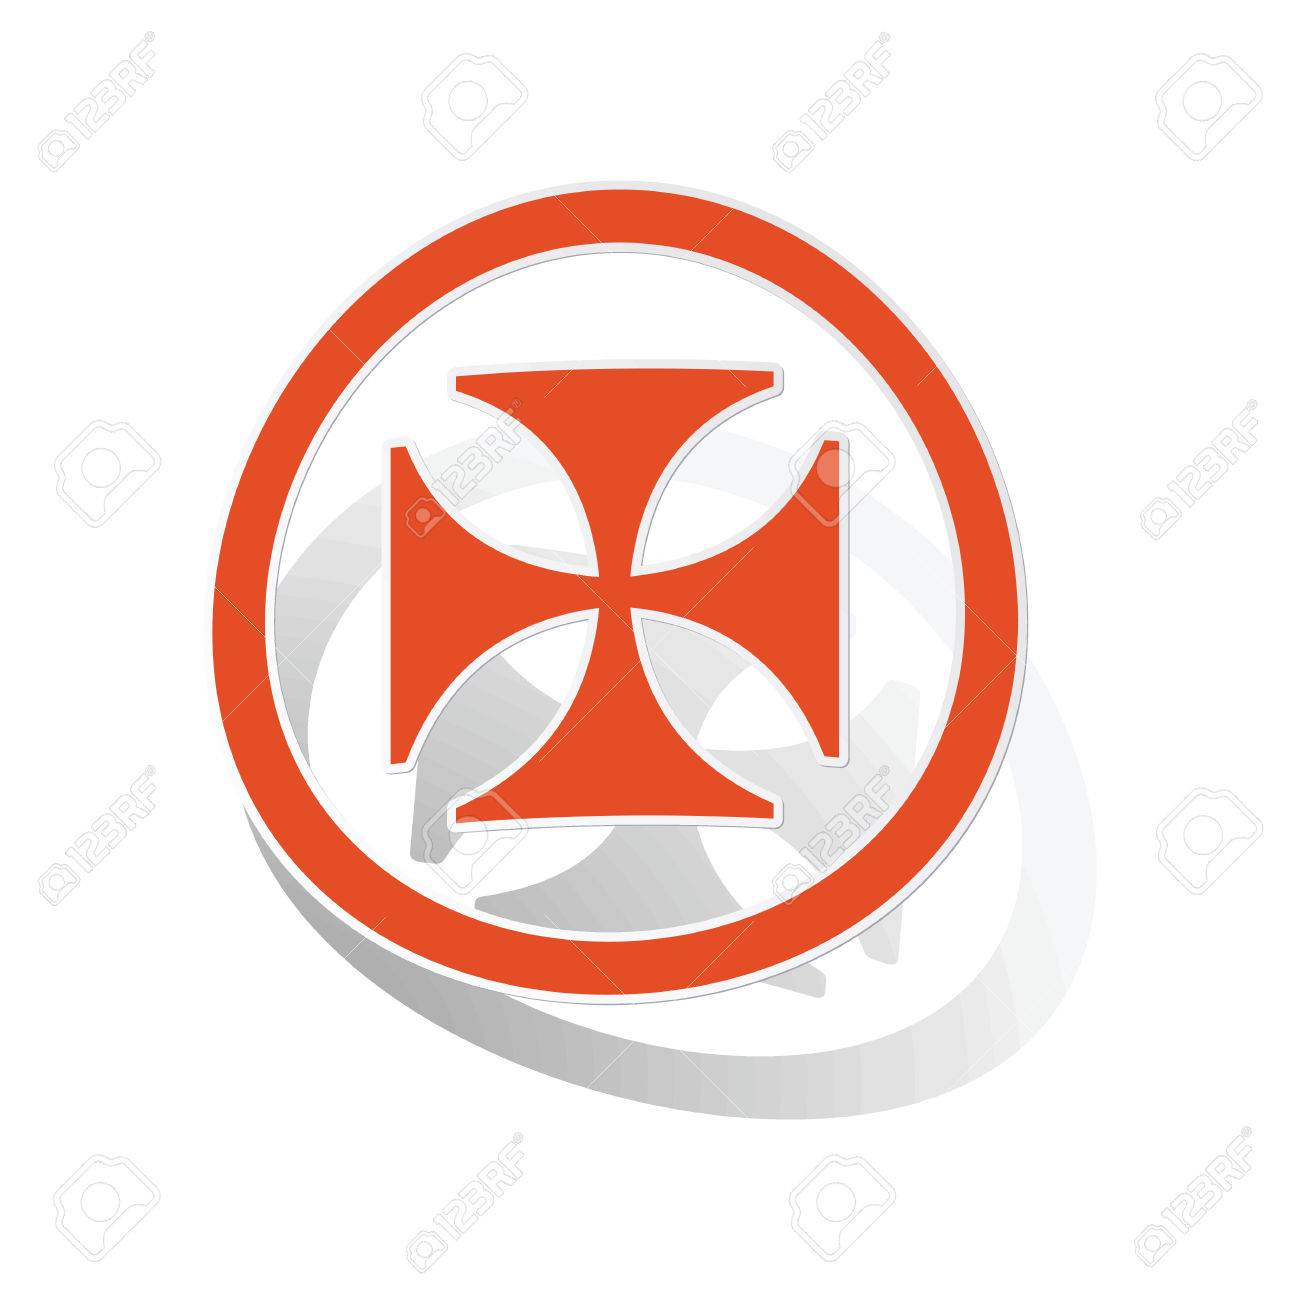 maltese cross sign sticker orange circle with image inside rh 123rf com  free maltese cross graphics